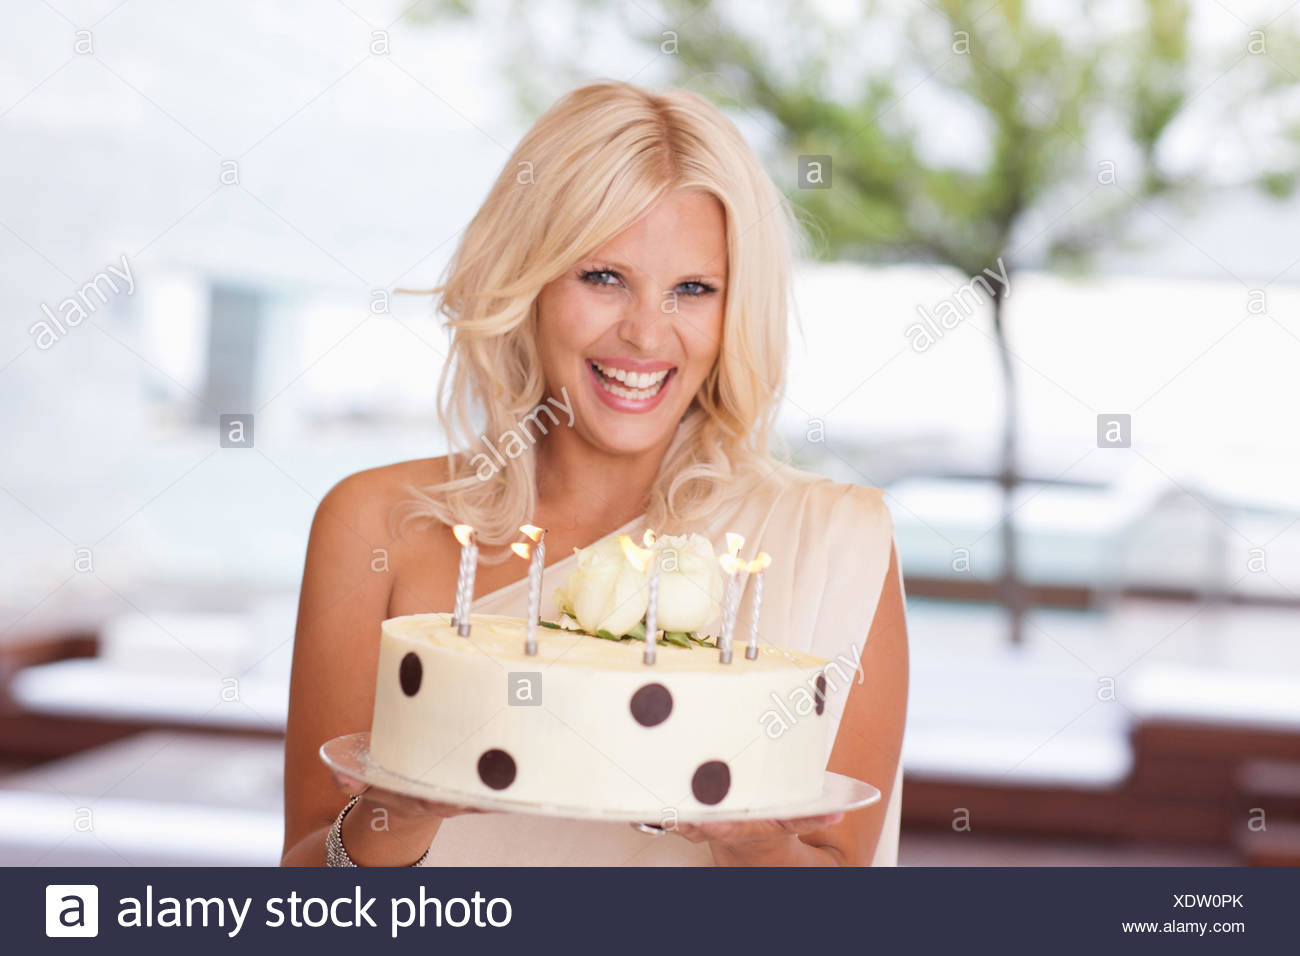 Portrait of woman holding birthday cake - Stock Image